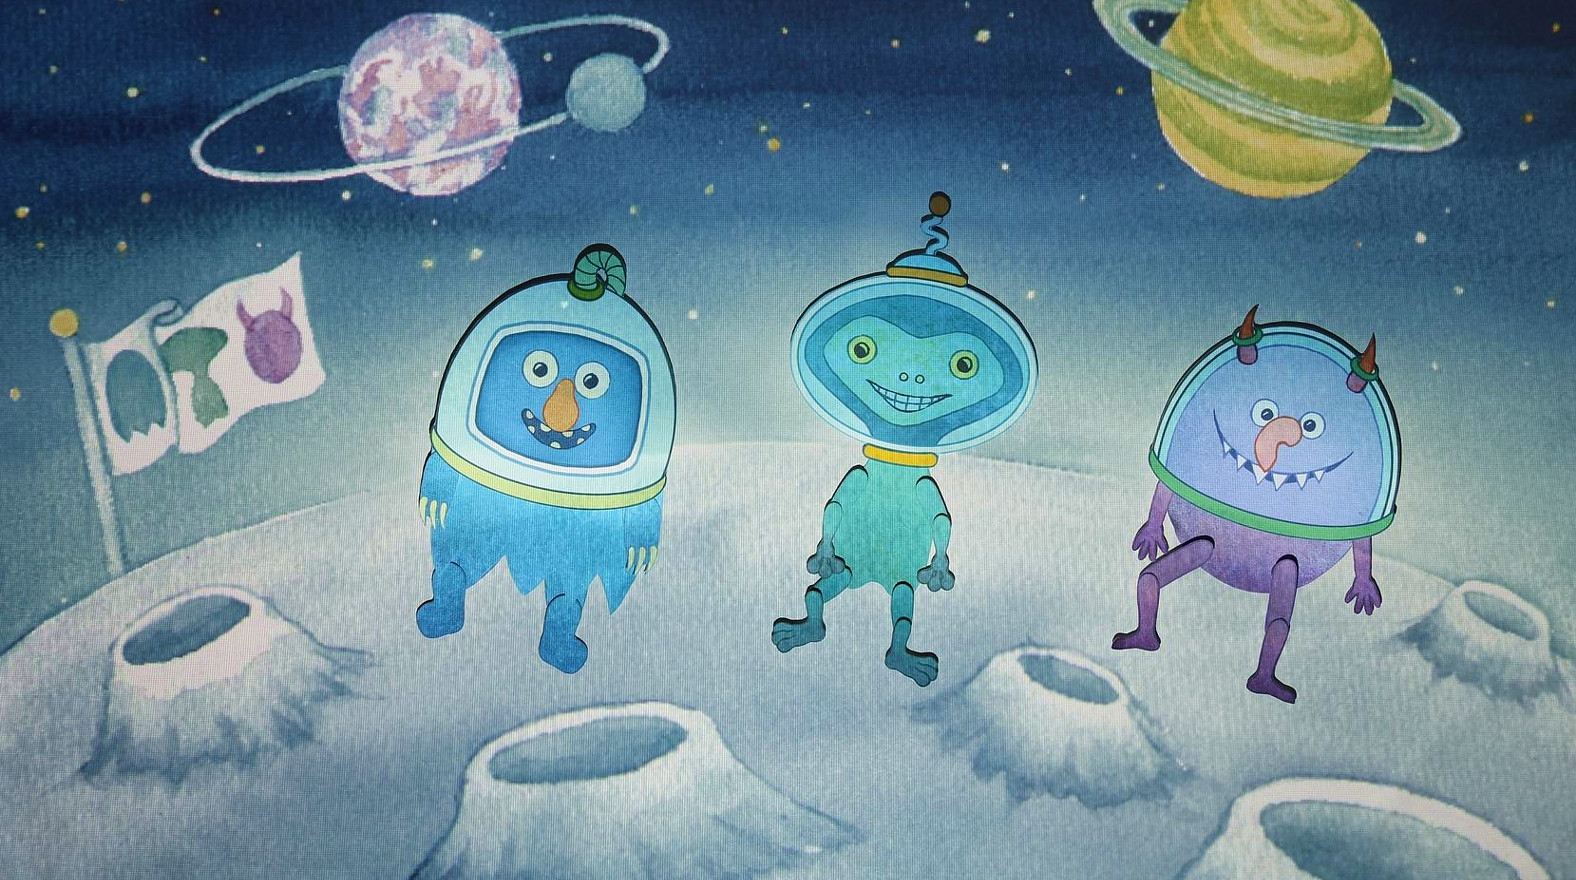 Dancing monster trio in the space